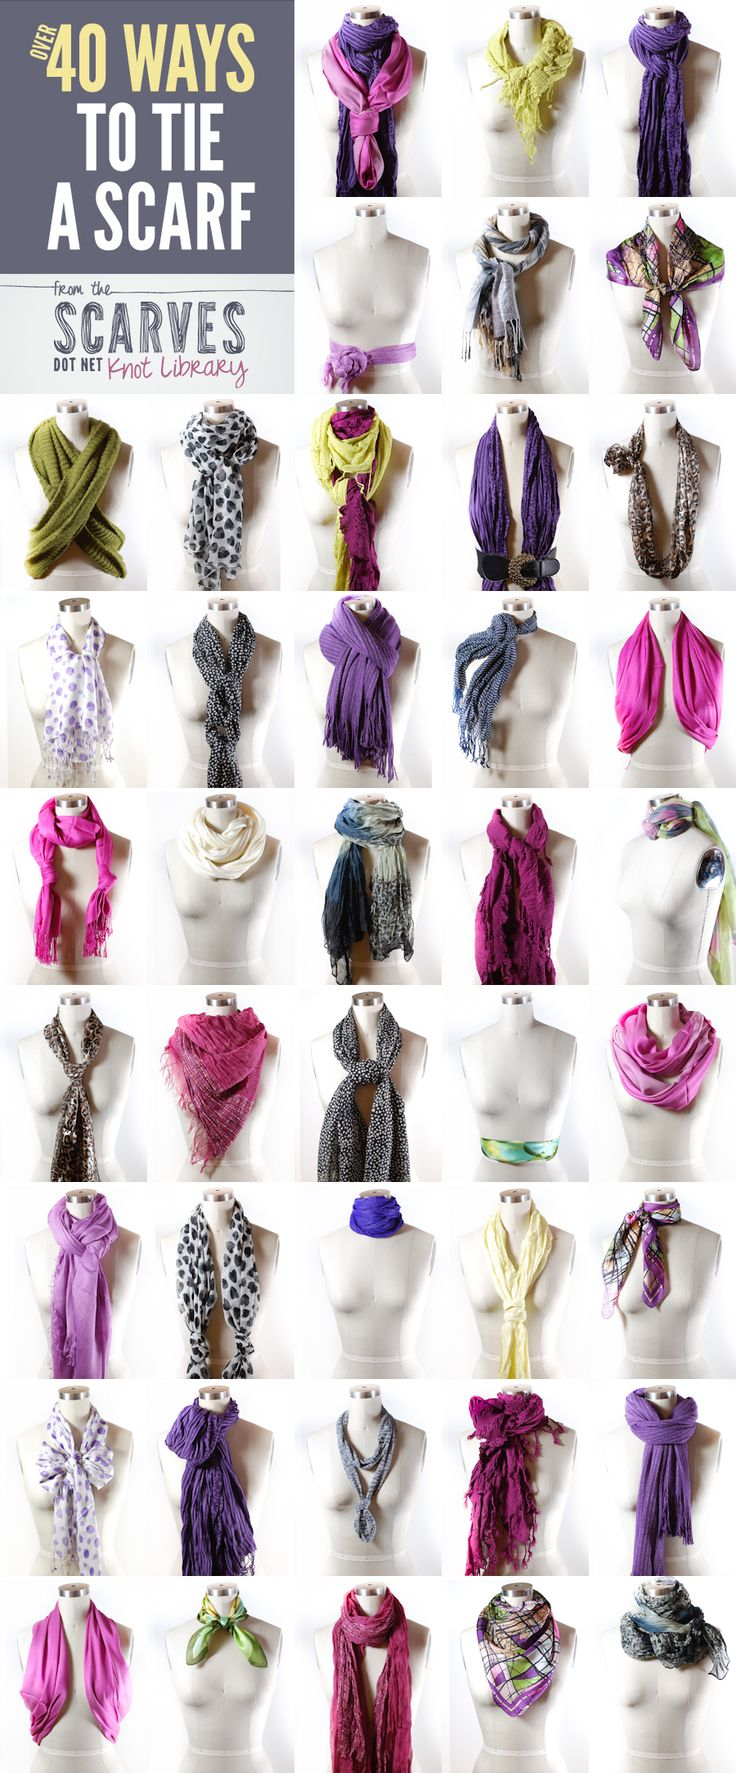 50+ Ways to Tie a Scarf for the person who just discovered them. :-)